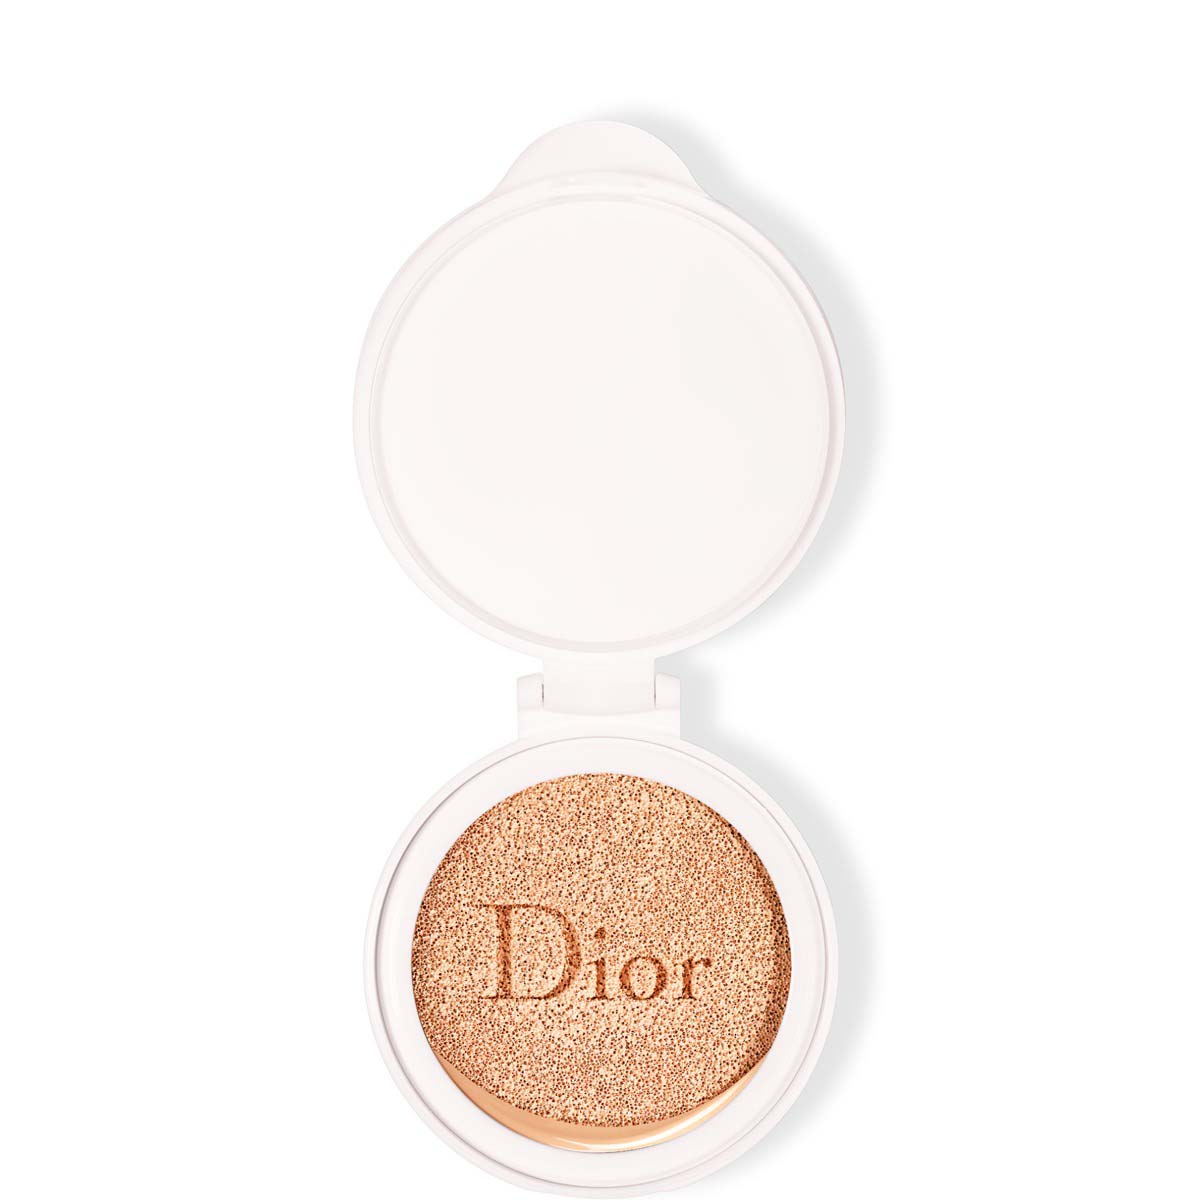 Dior - Capture Dreamskin Moist & Perfect Cushion SPF 50 PA+++ - La Recharge